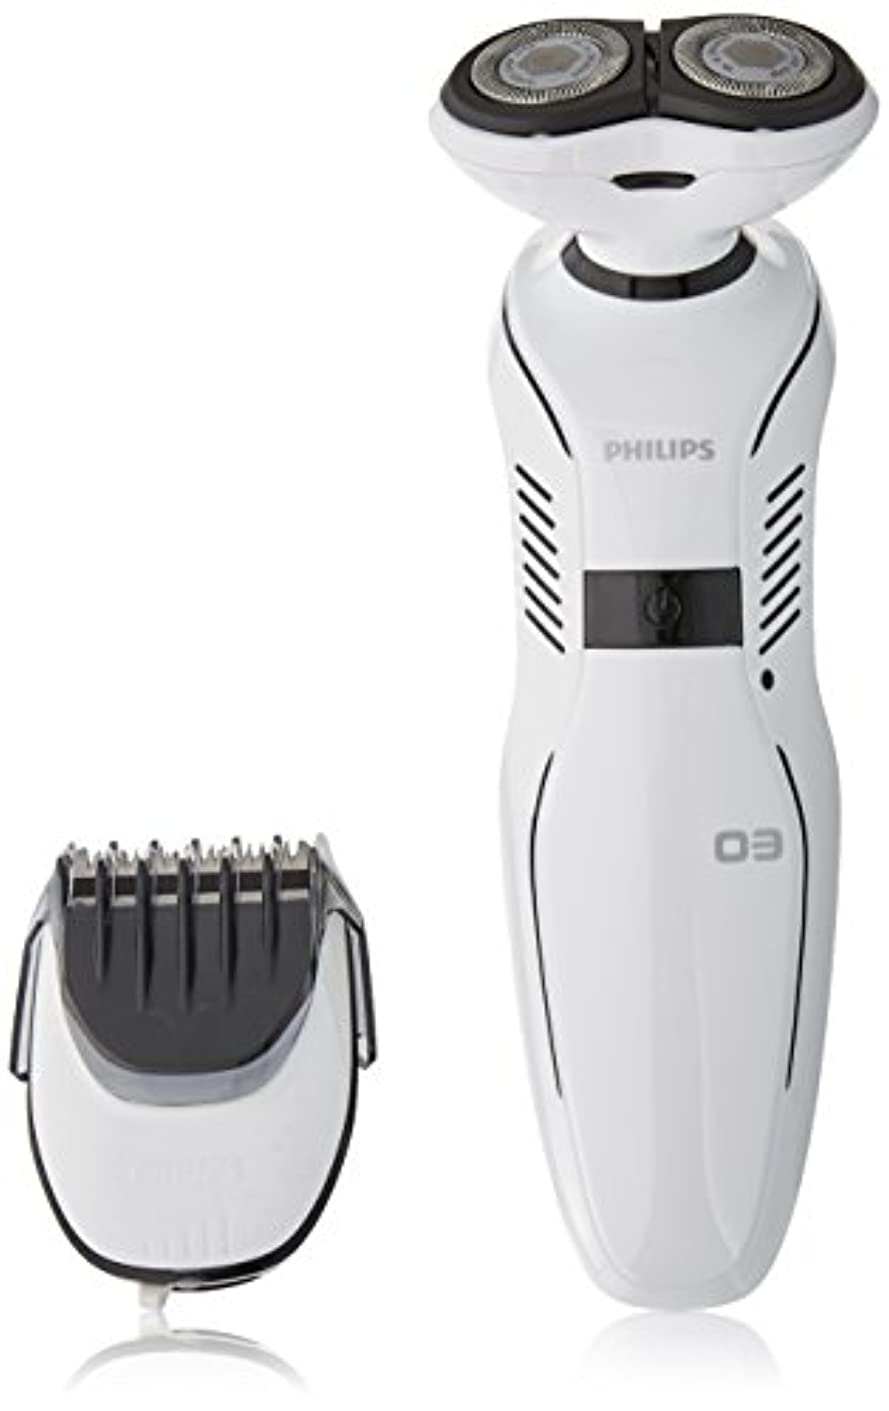 ネズミピボット正統派Philips Norelco Special Edition Star Wars Storm Trooper Wet & Dry Electric Shaver & Styler, SW175/81